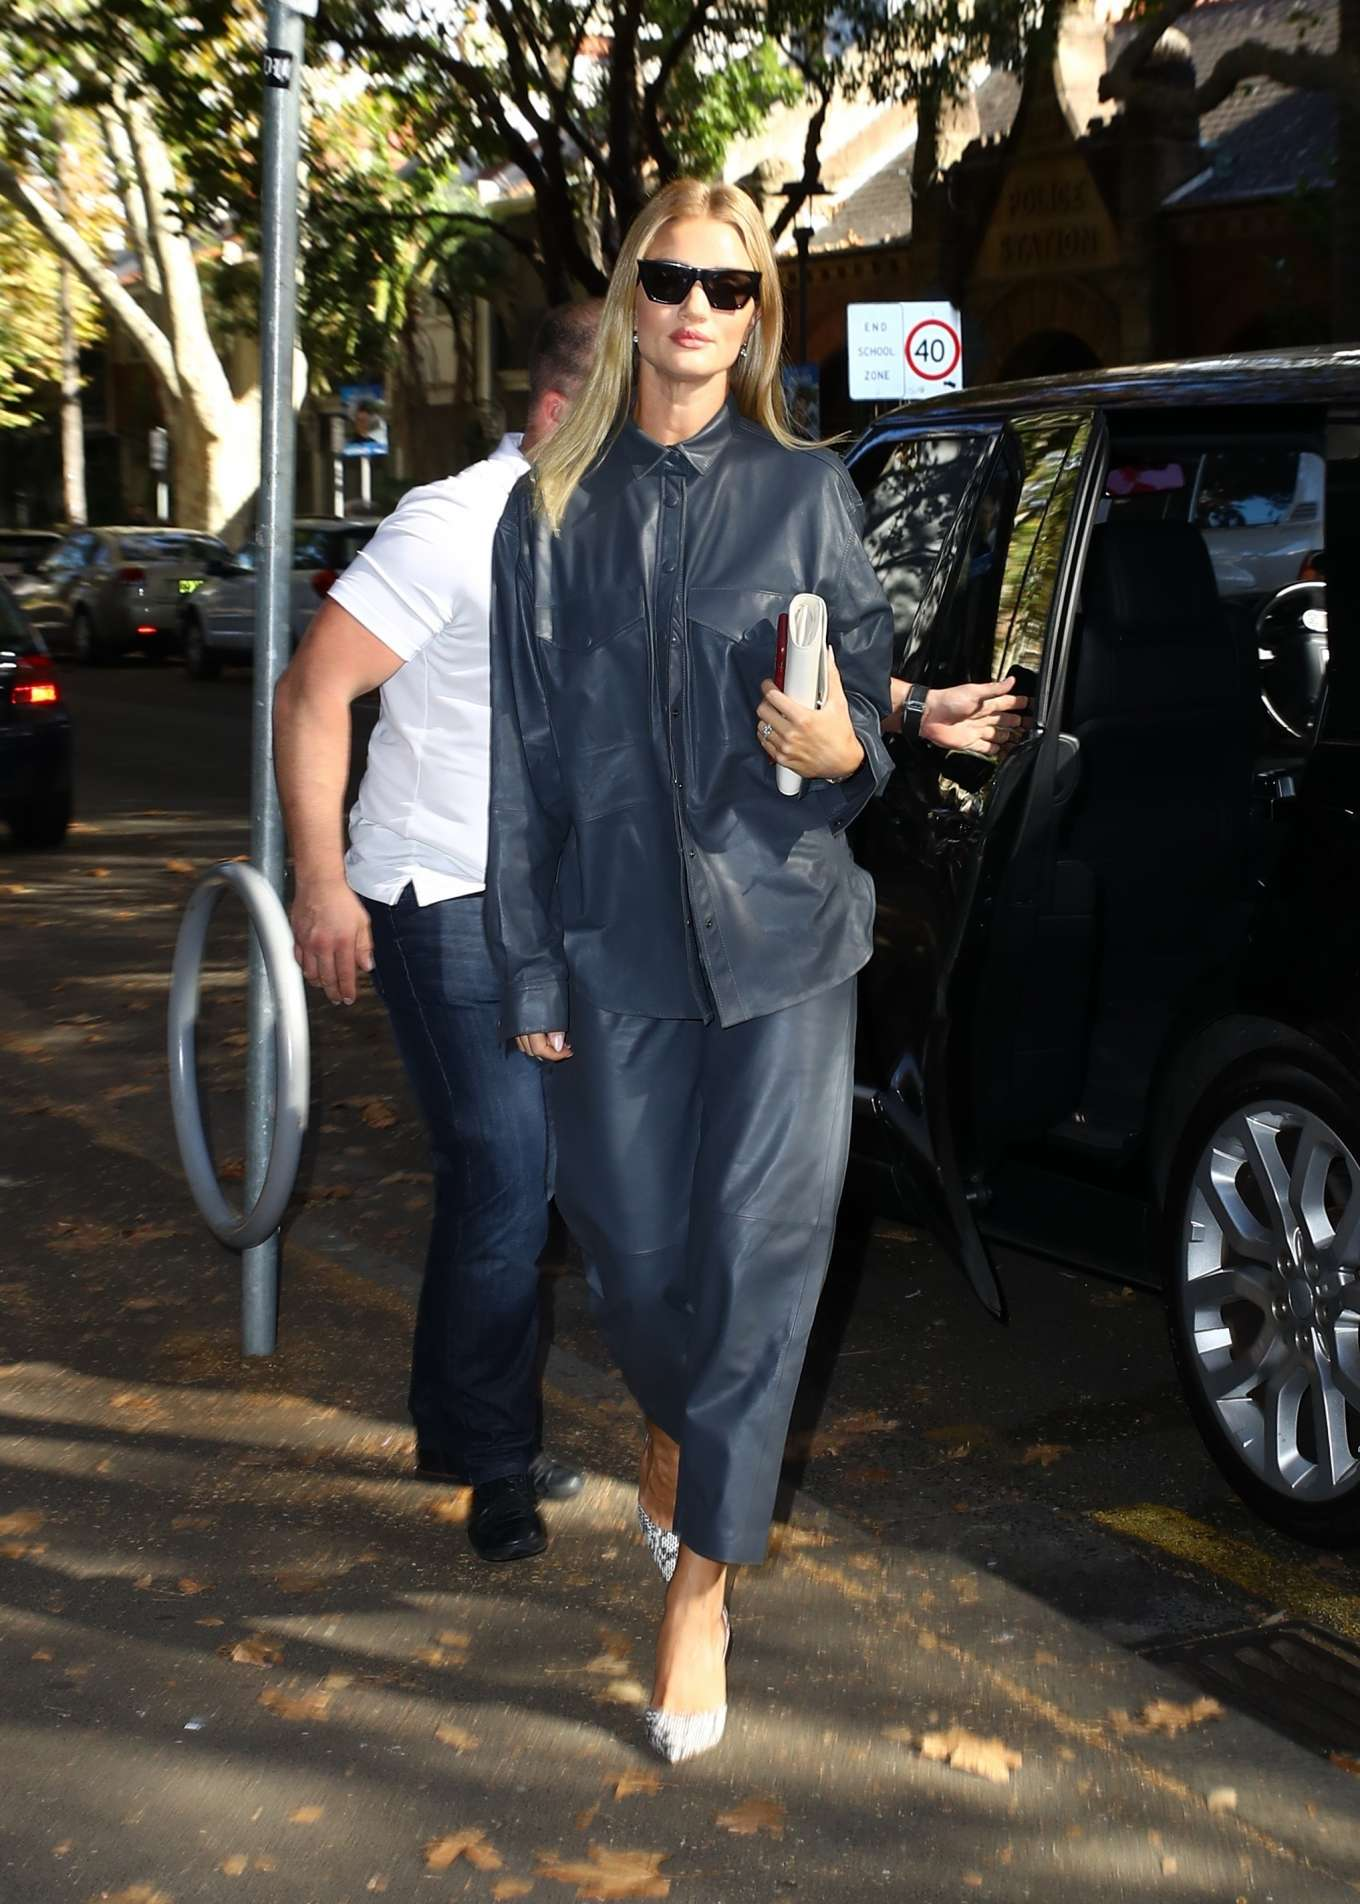 Rosie Huntington Whiteley 2019 : Rosie Huntington Whiteley: Out for coffee in Surry Hills-12